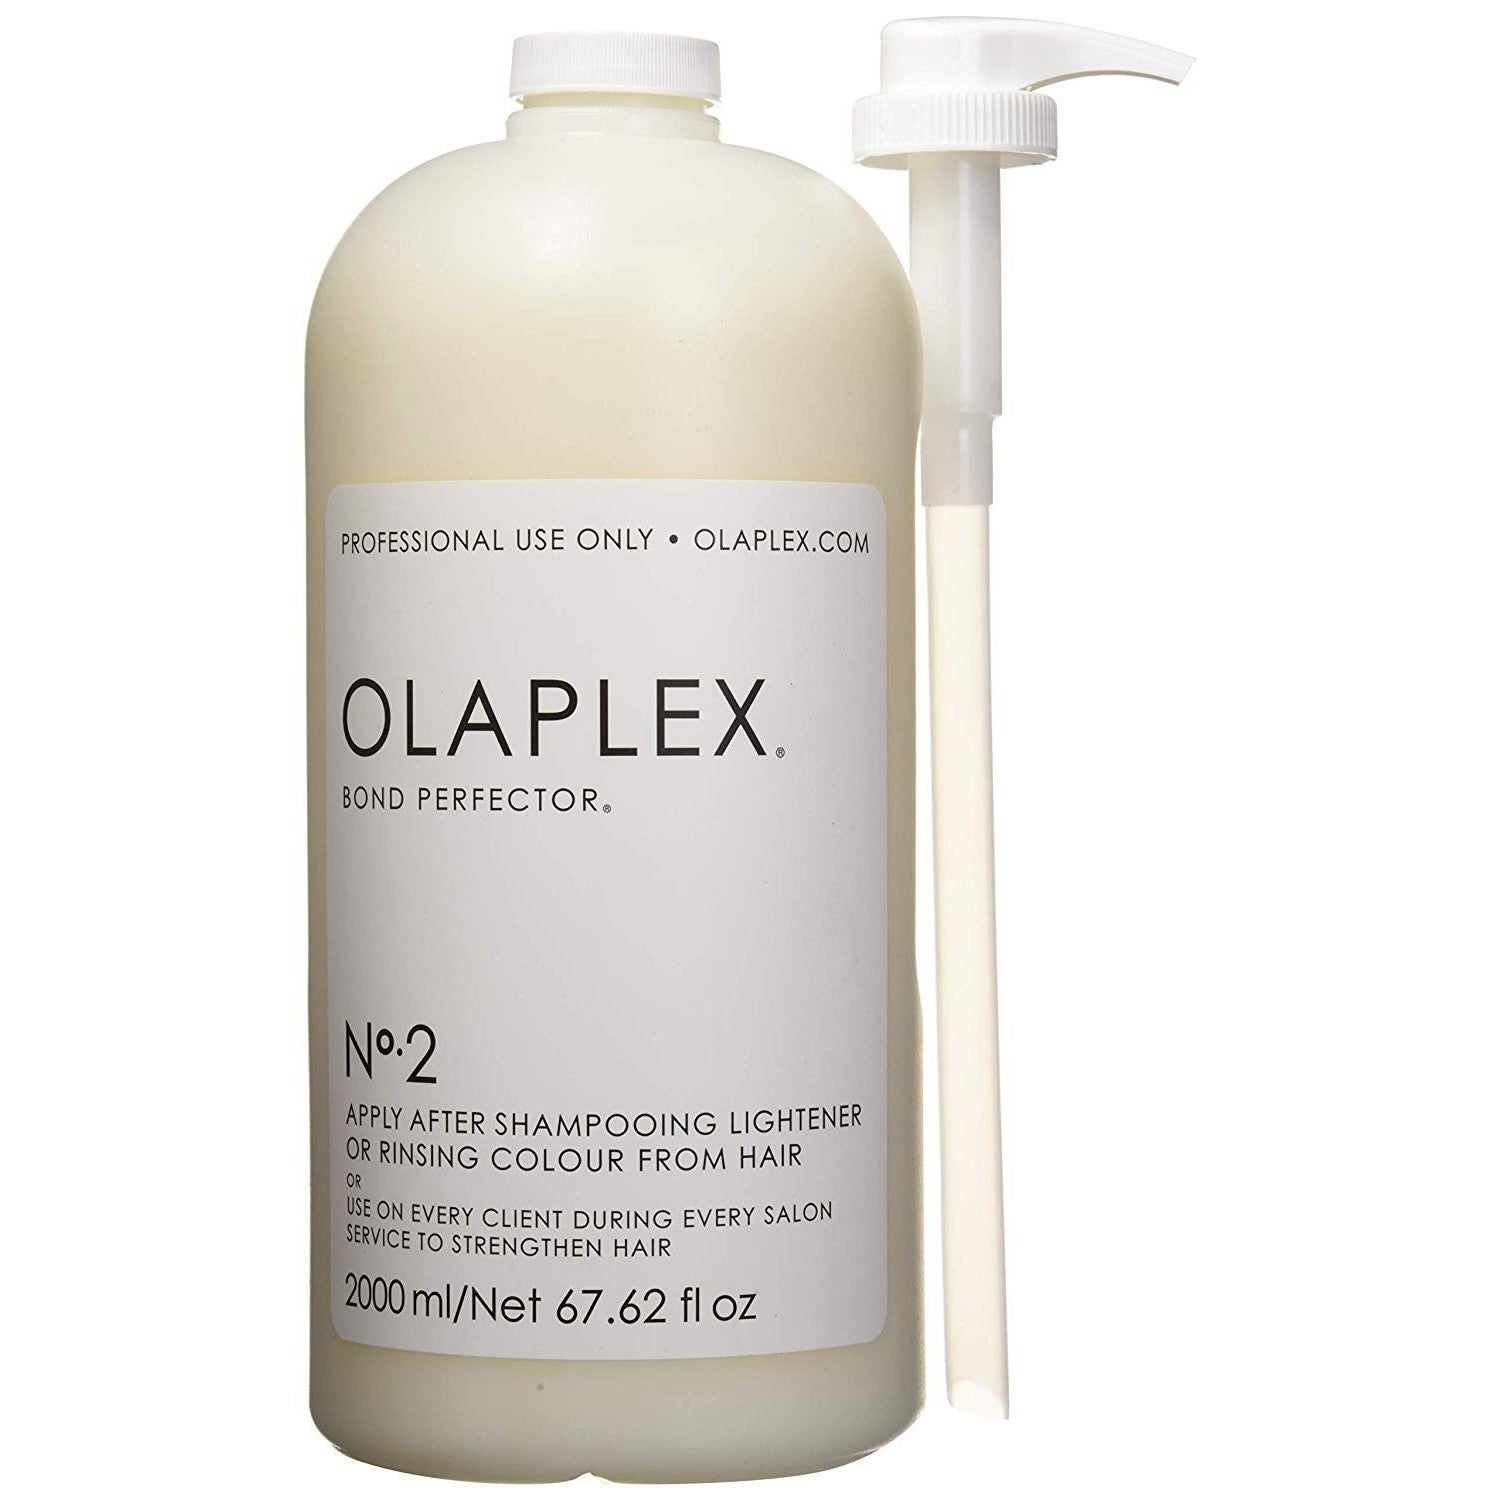 Beauty Products | Shop our Best Health & Beauty Deals Online at Overstock